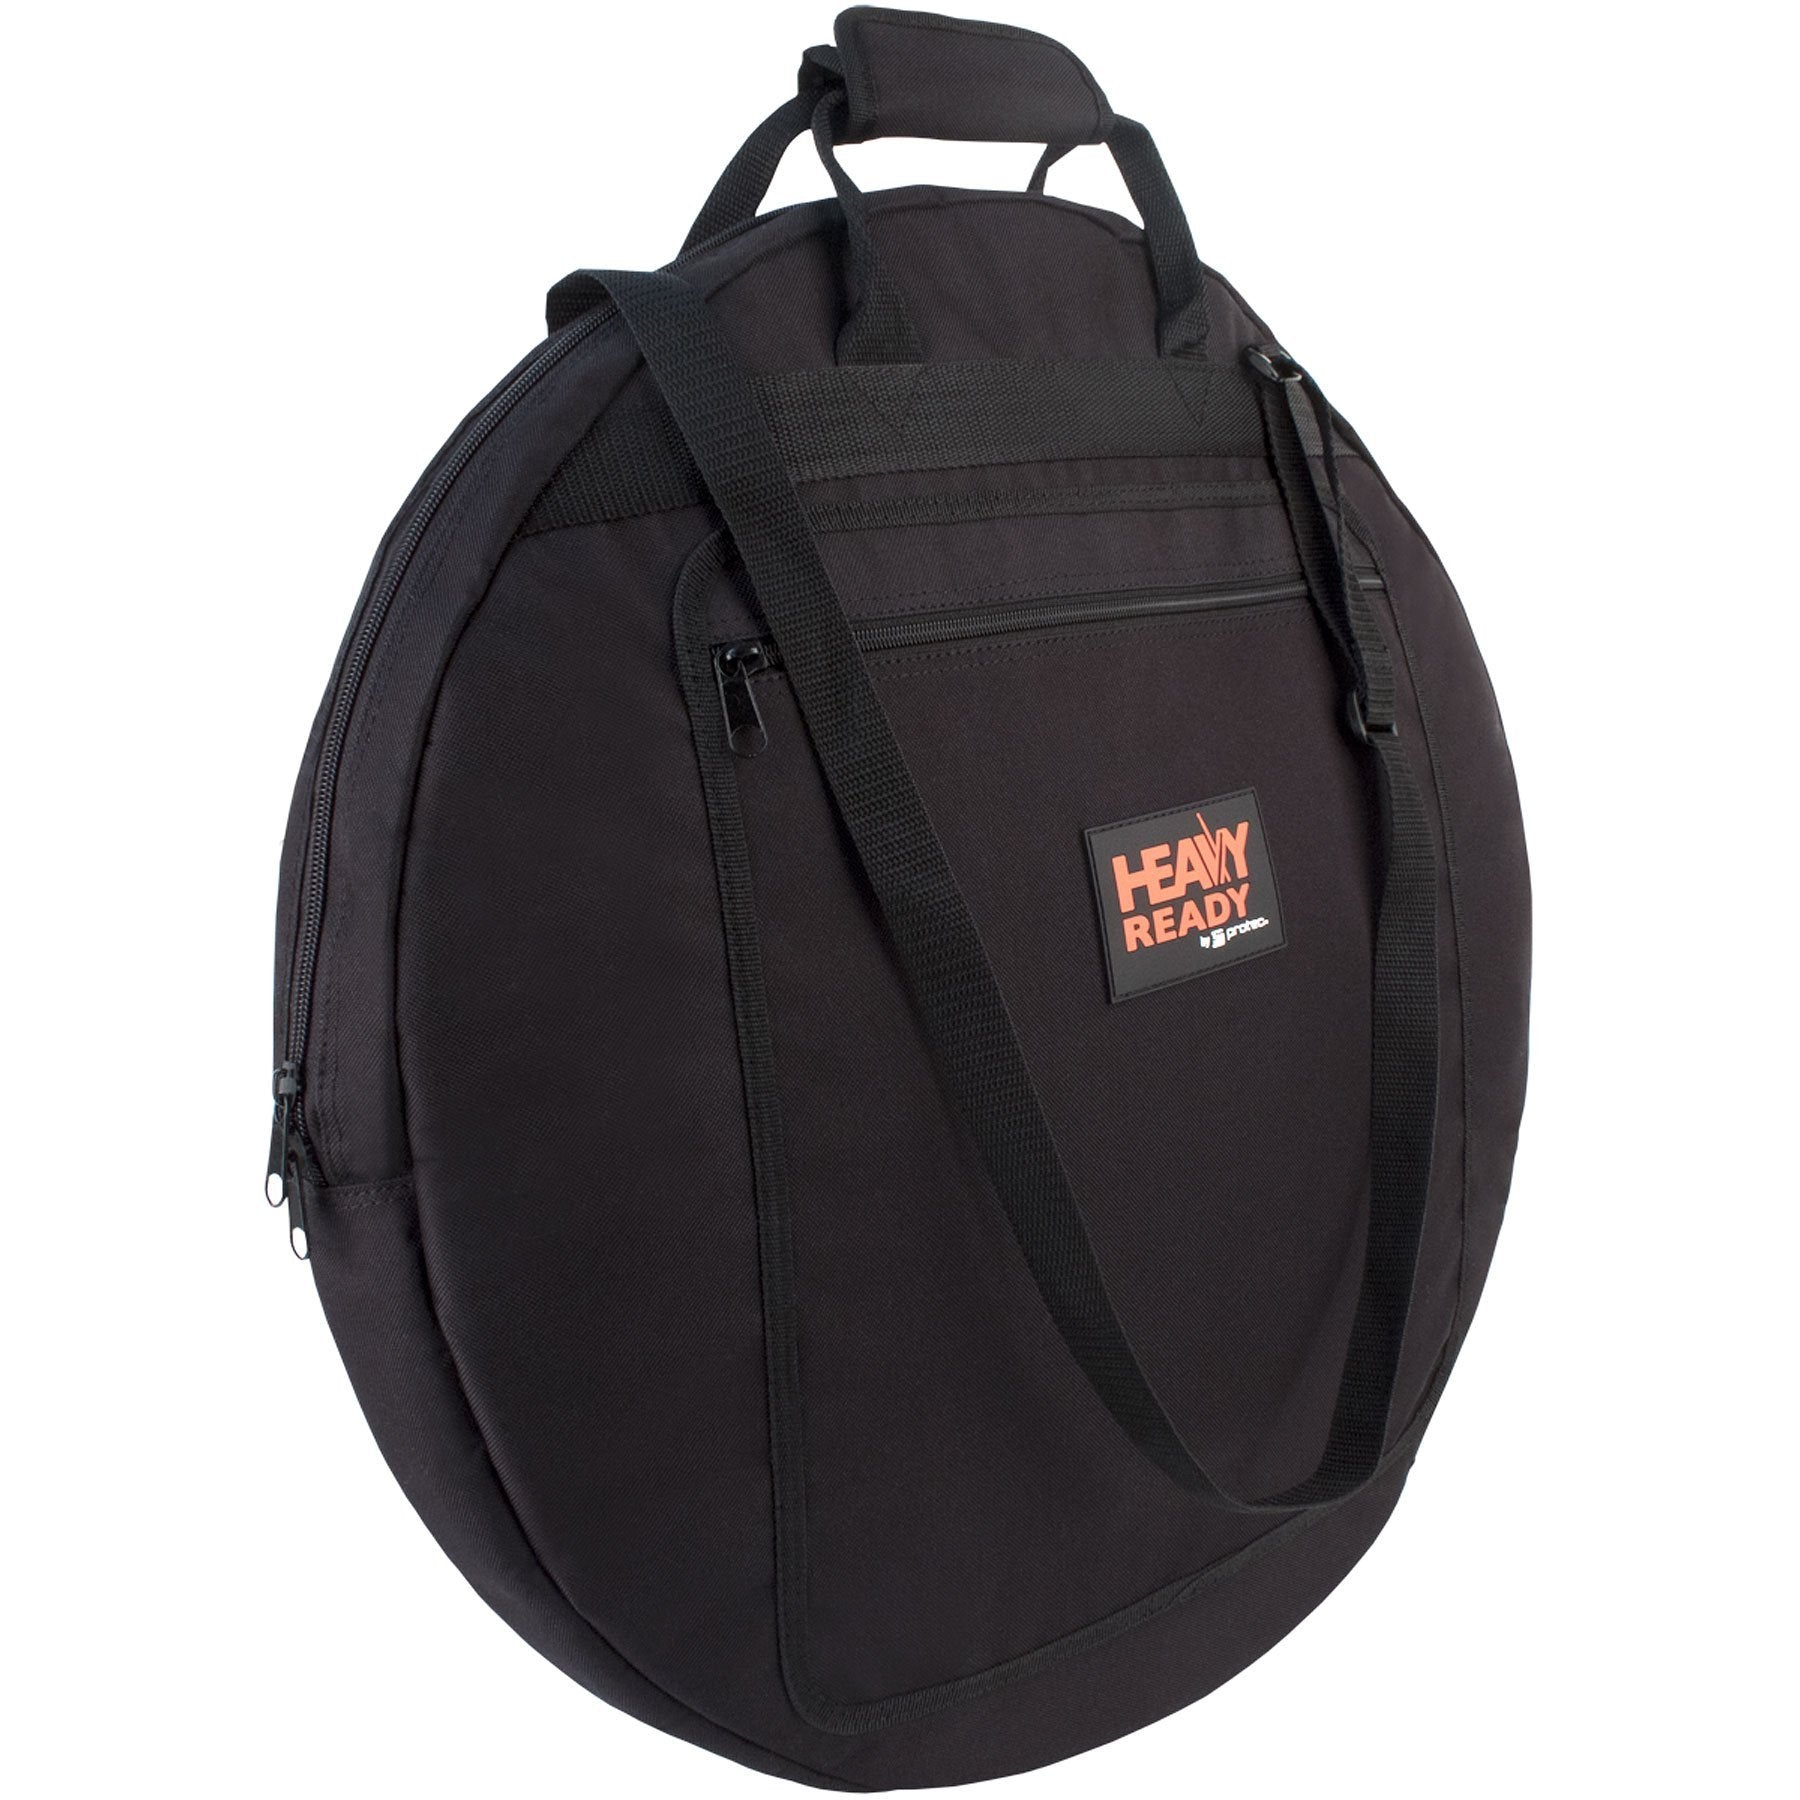 "Protec - 22"" Cymbal Bag (Heavy Ready Series)-Percussion-Protec-Music Elements"